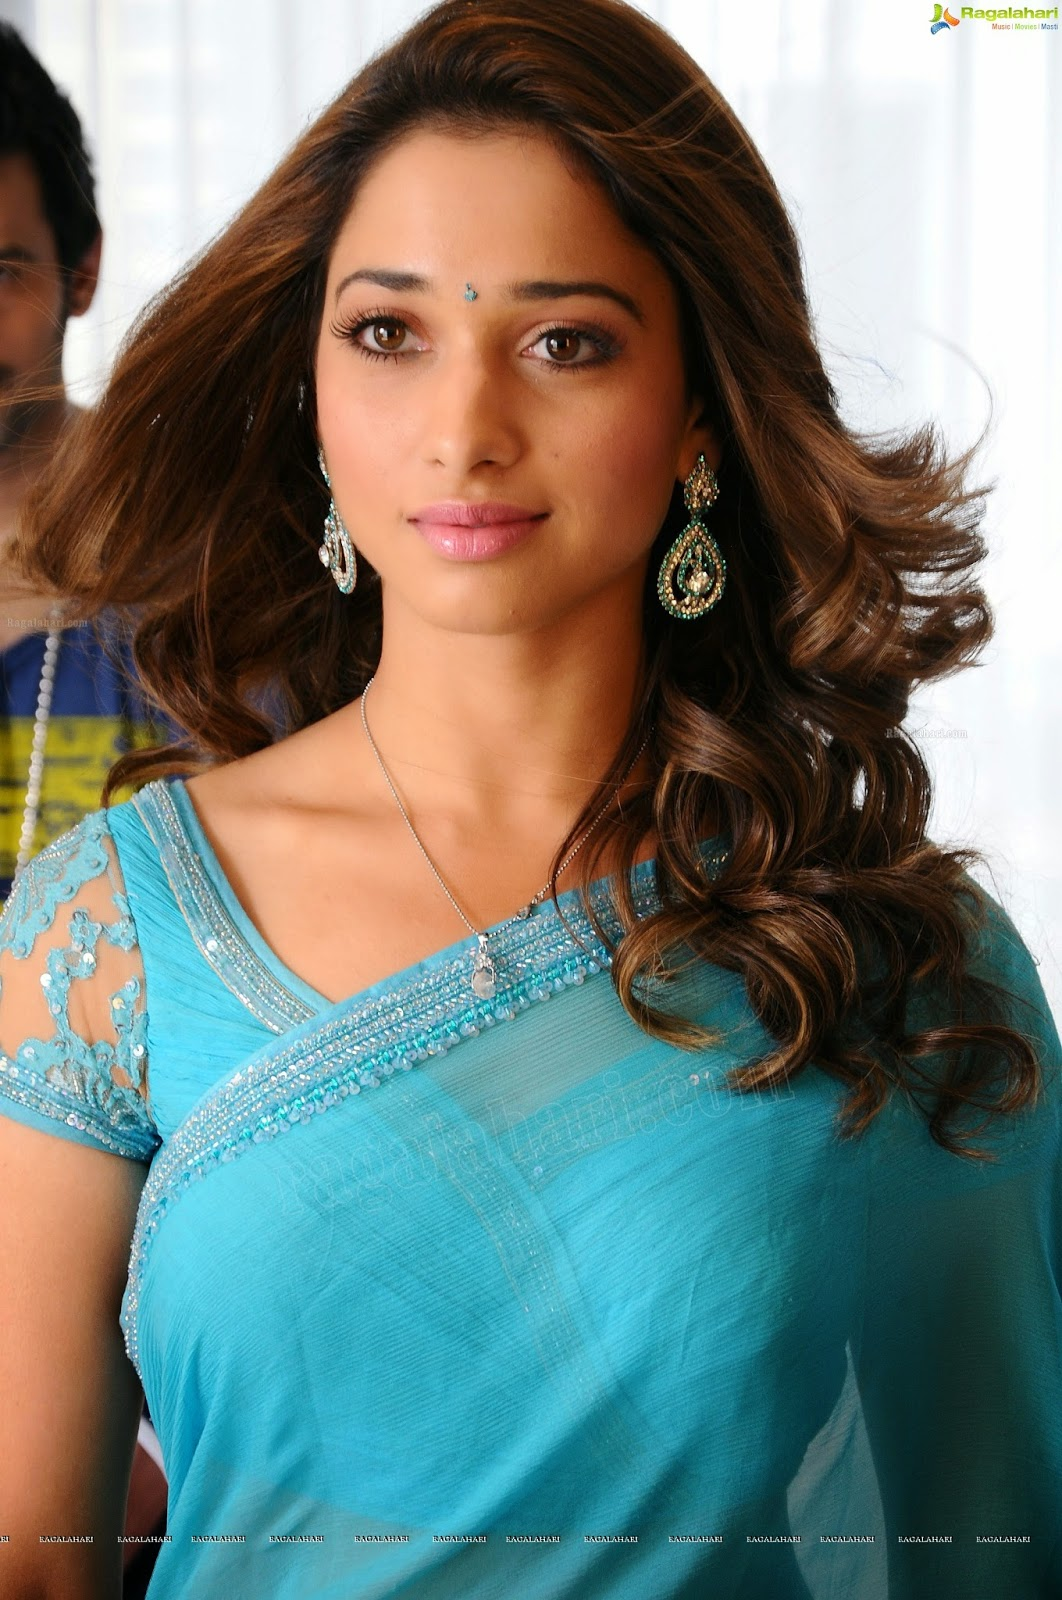 Tamanna Saree Gulte: OnLy AcTrEsS: Tamanna Front And Side View Hot In Blue